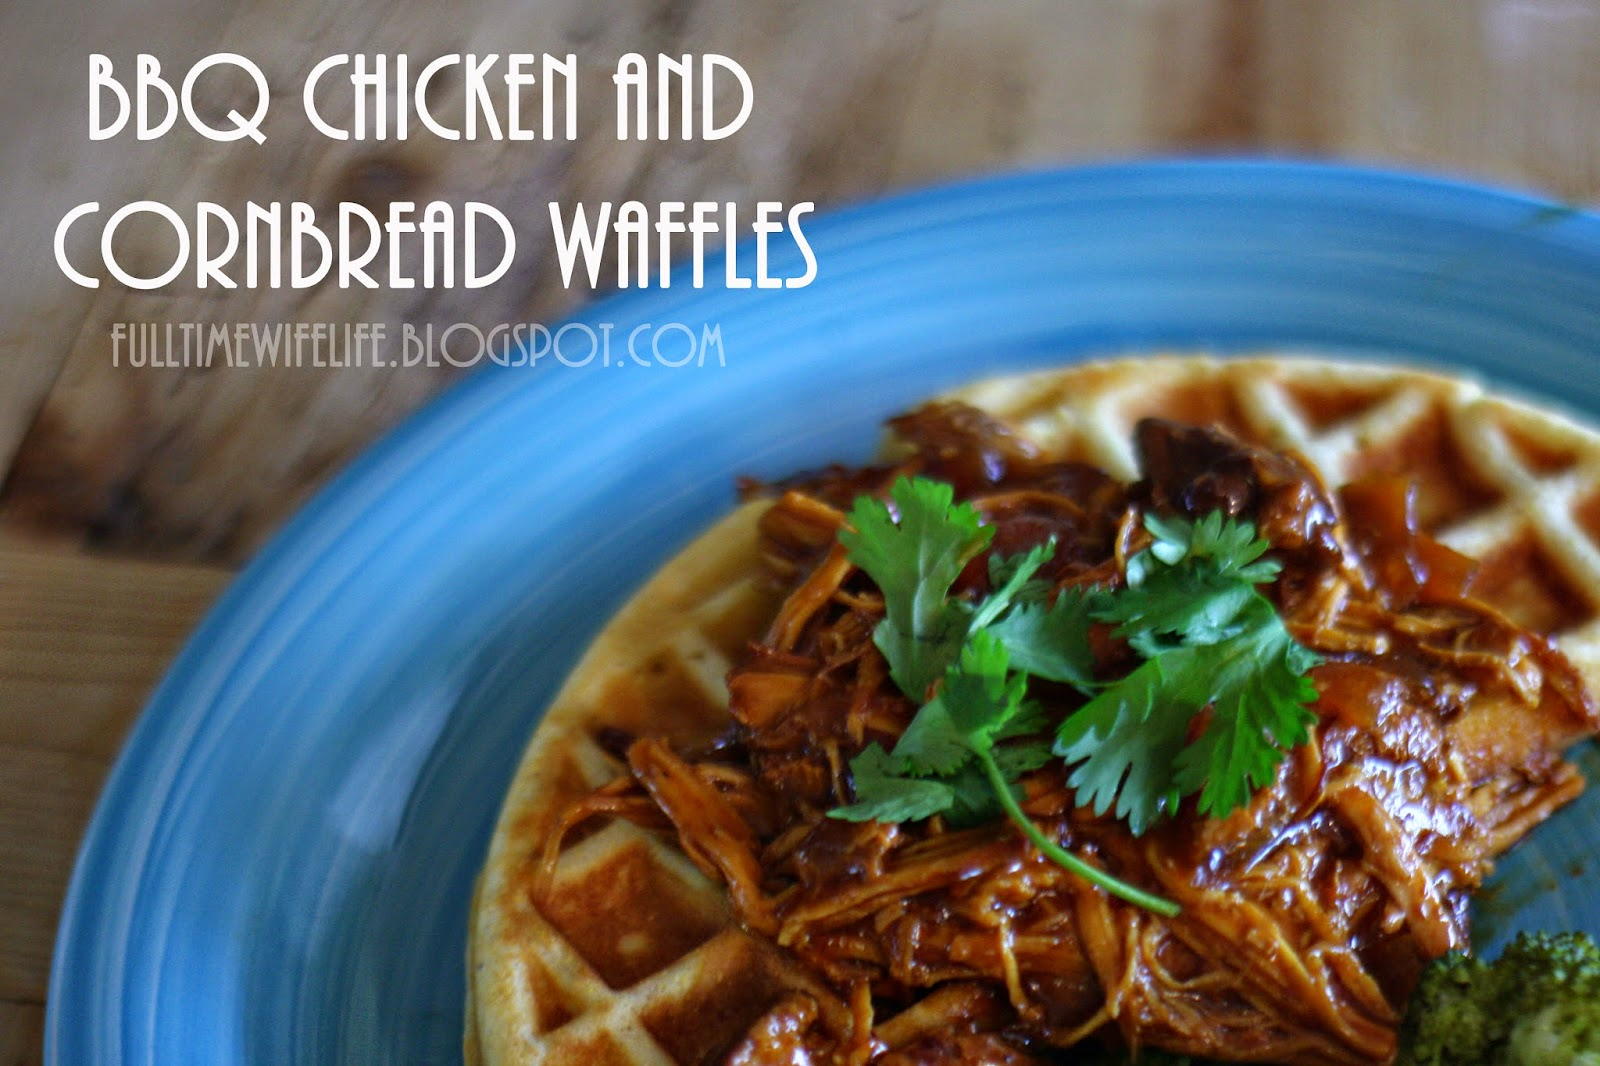 Full time wife life bbq chicken and cornbread waffles for the chicken forumfinder Gallery